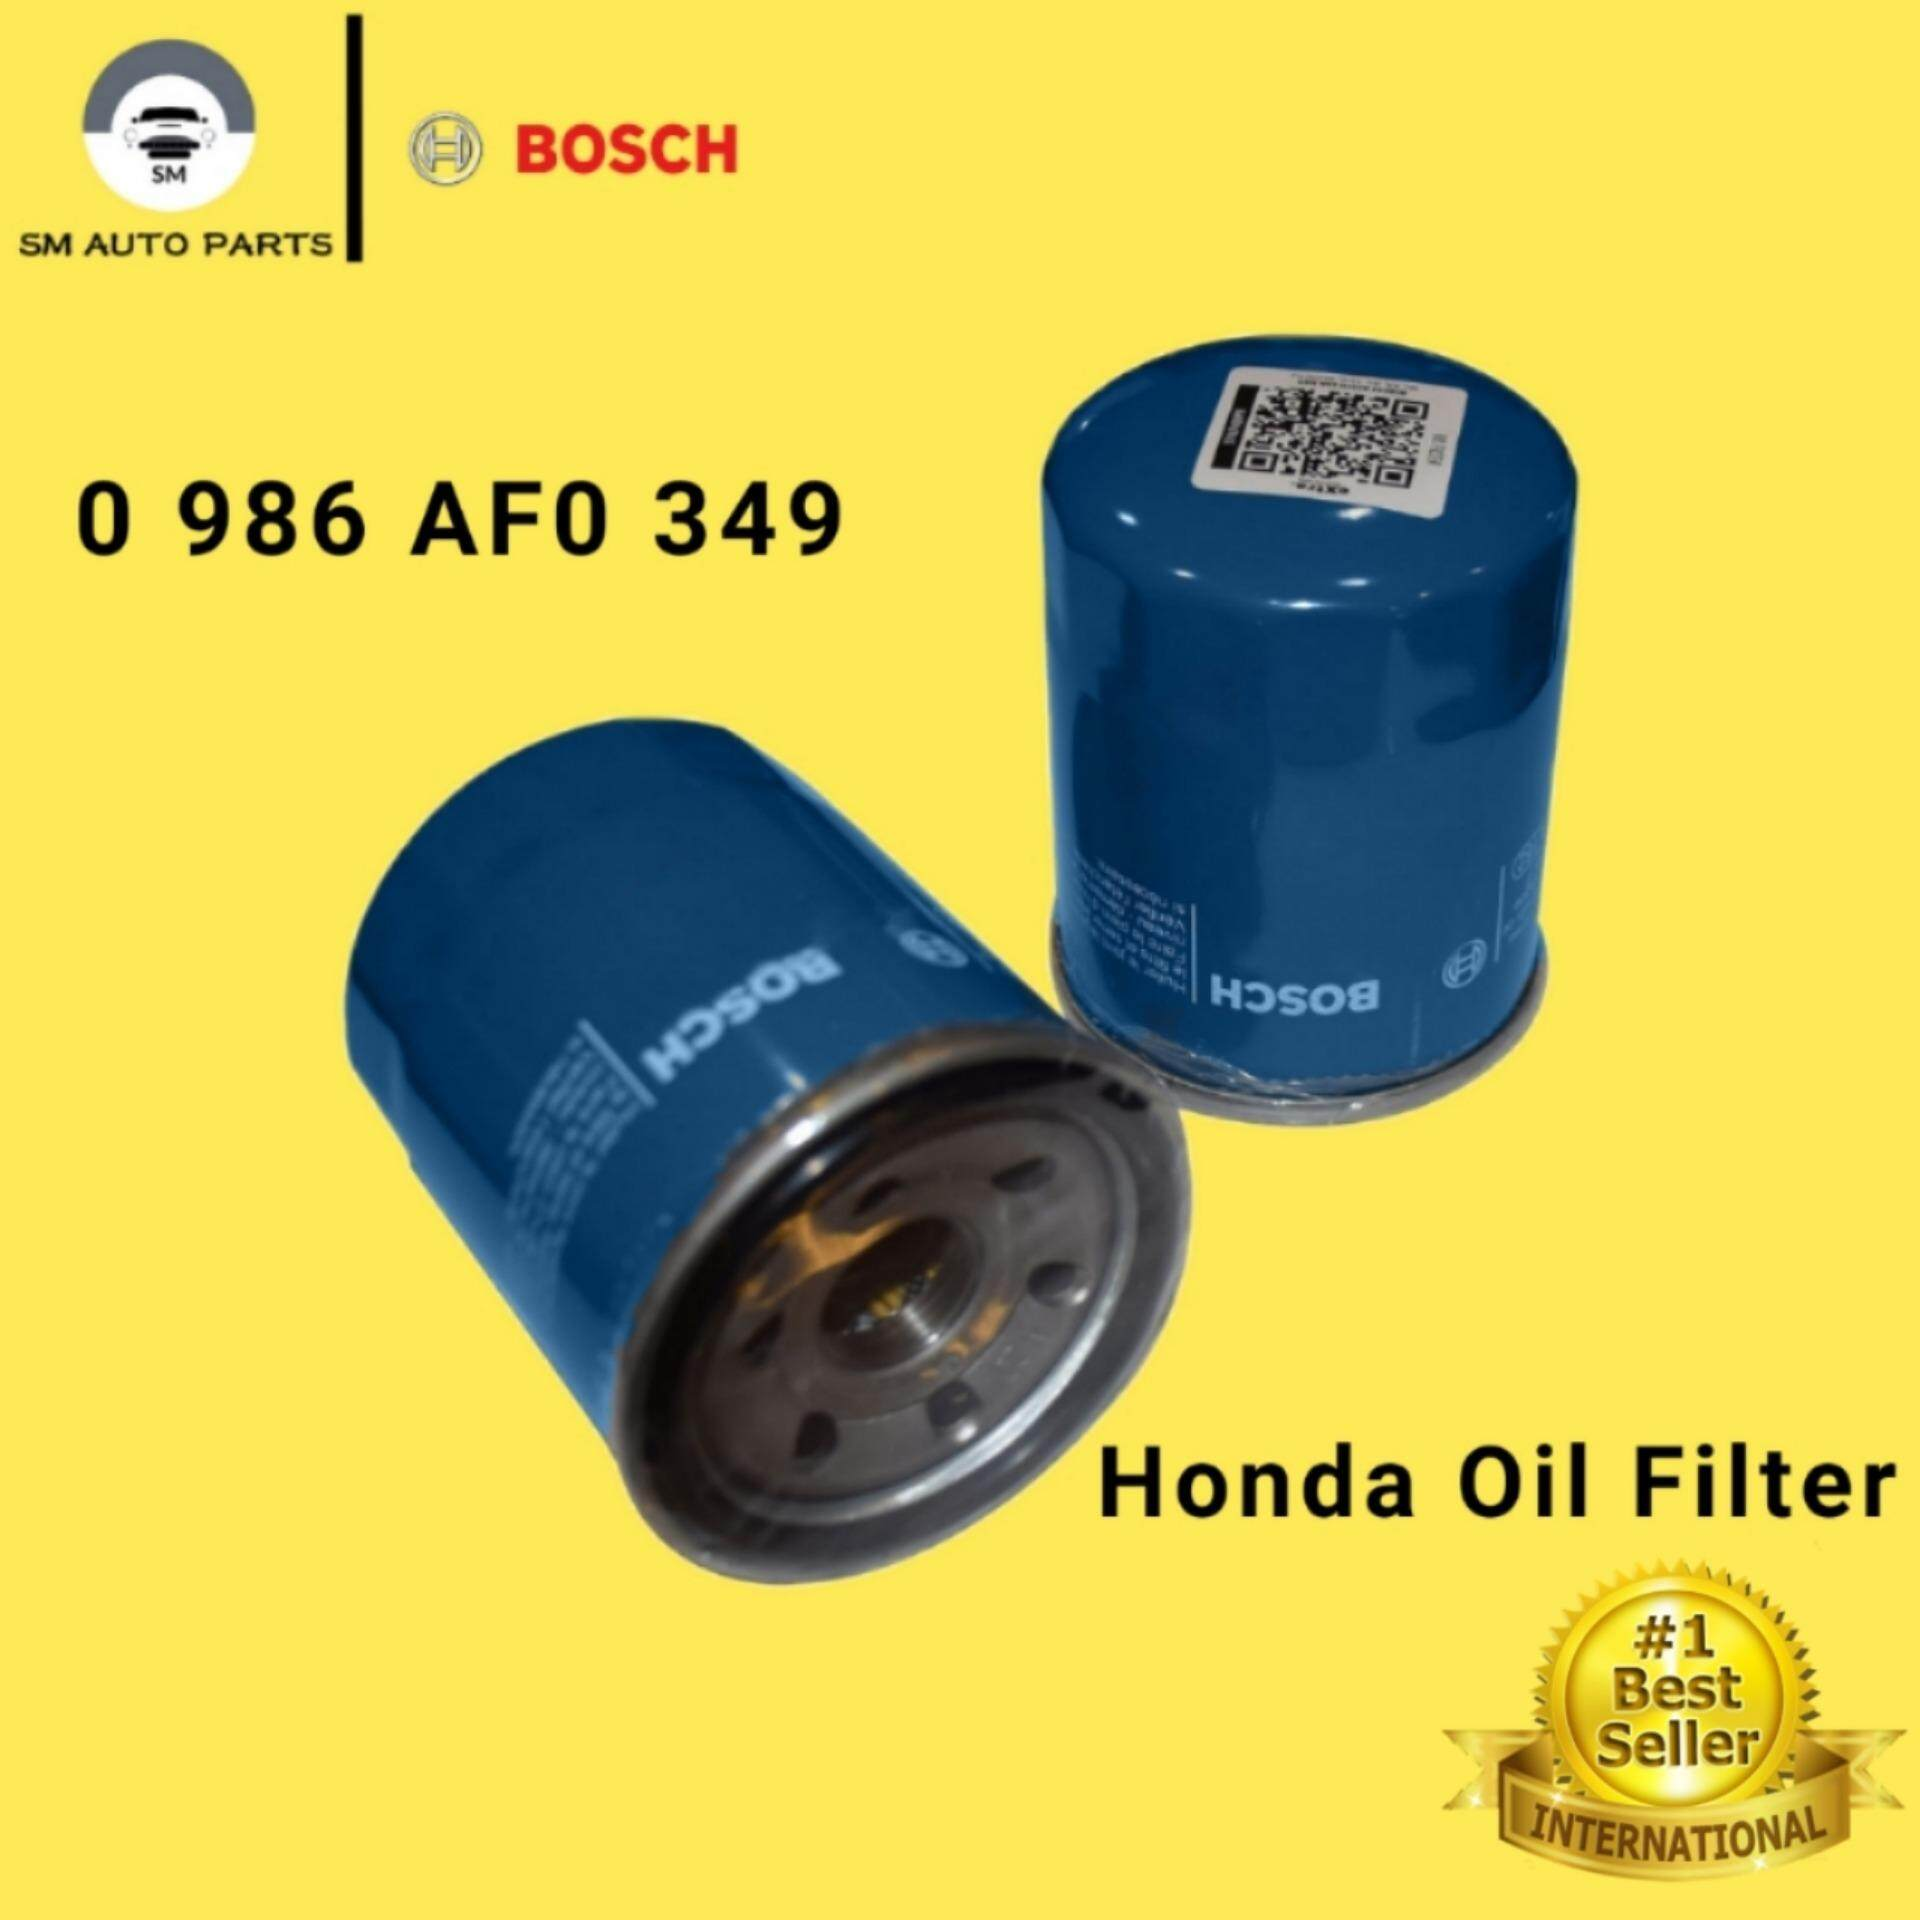 Buy Sell Cheapest Honda City Fuel Filter Best Quality Product Bosch Oil For Civic Accord